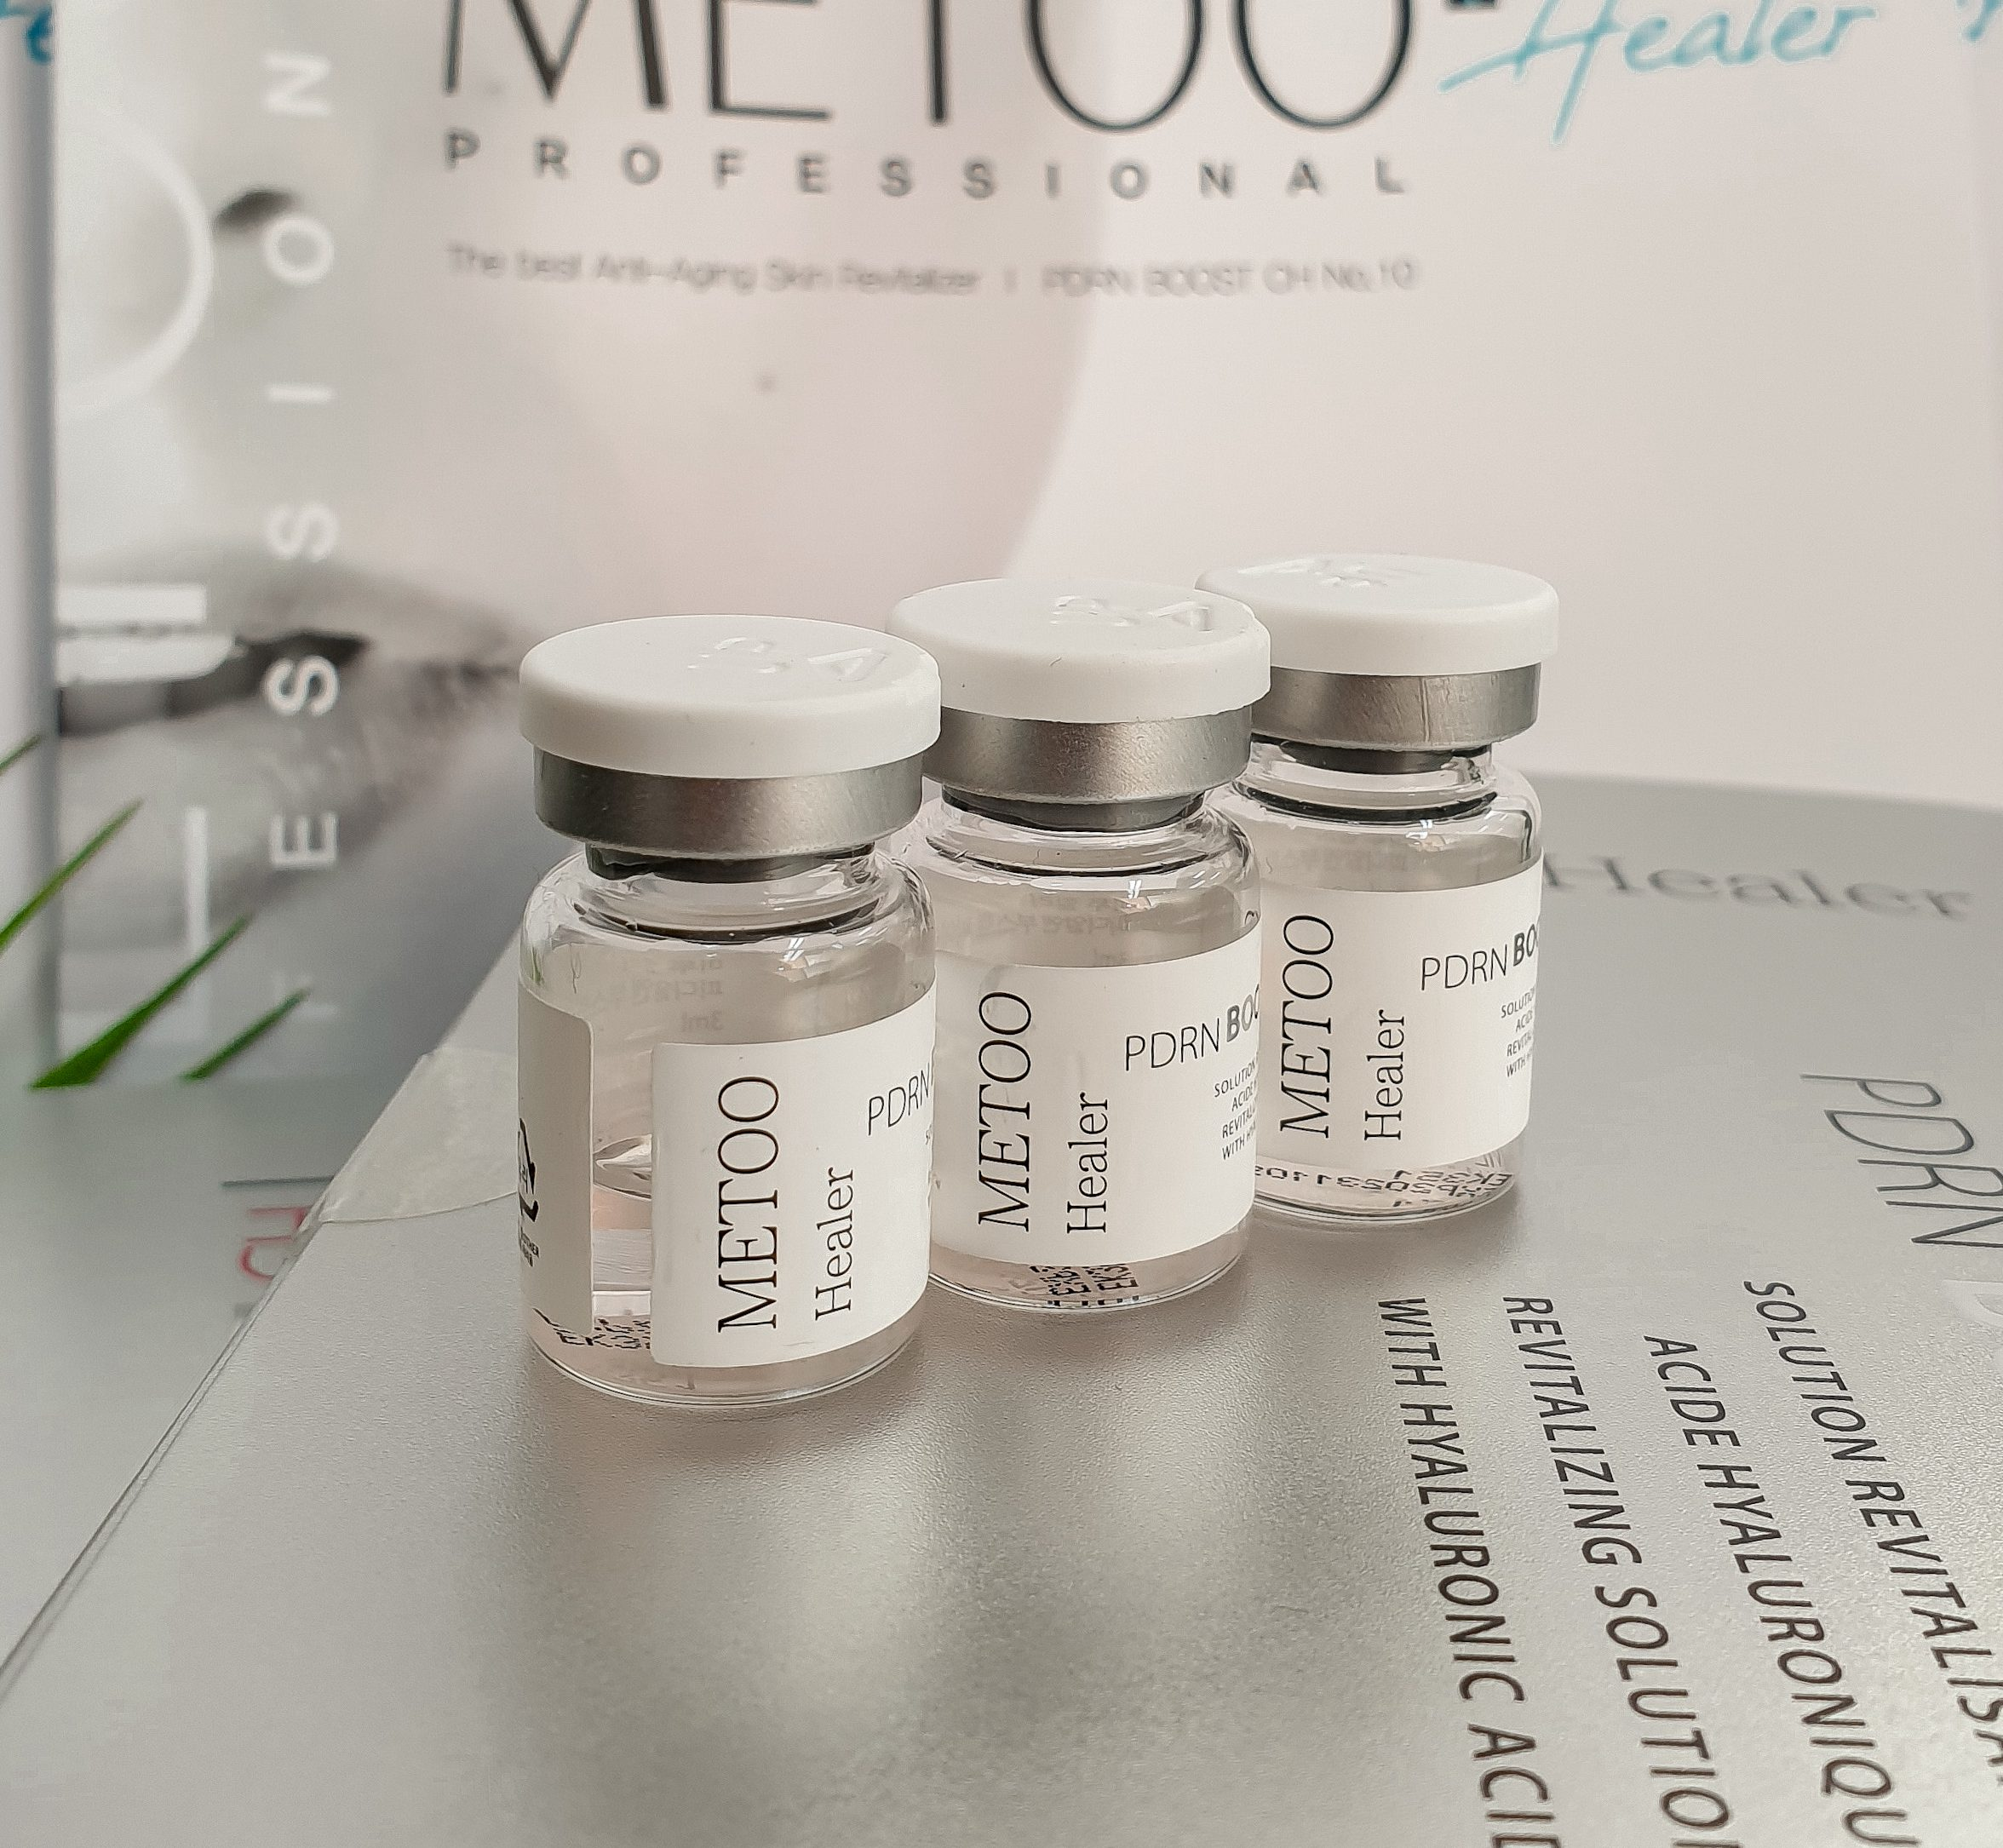 Metoo Healer PDRN Booster made by Maypharm